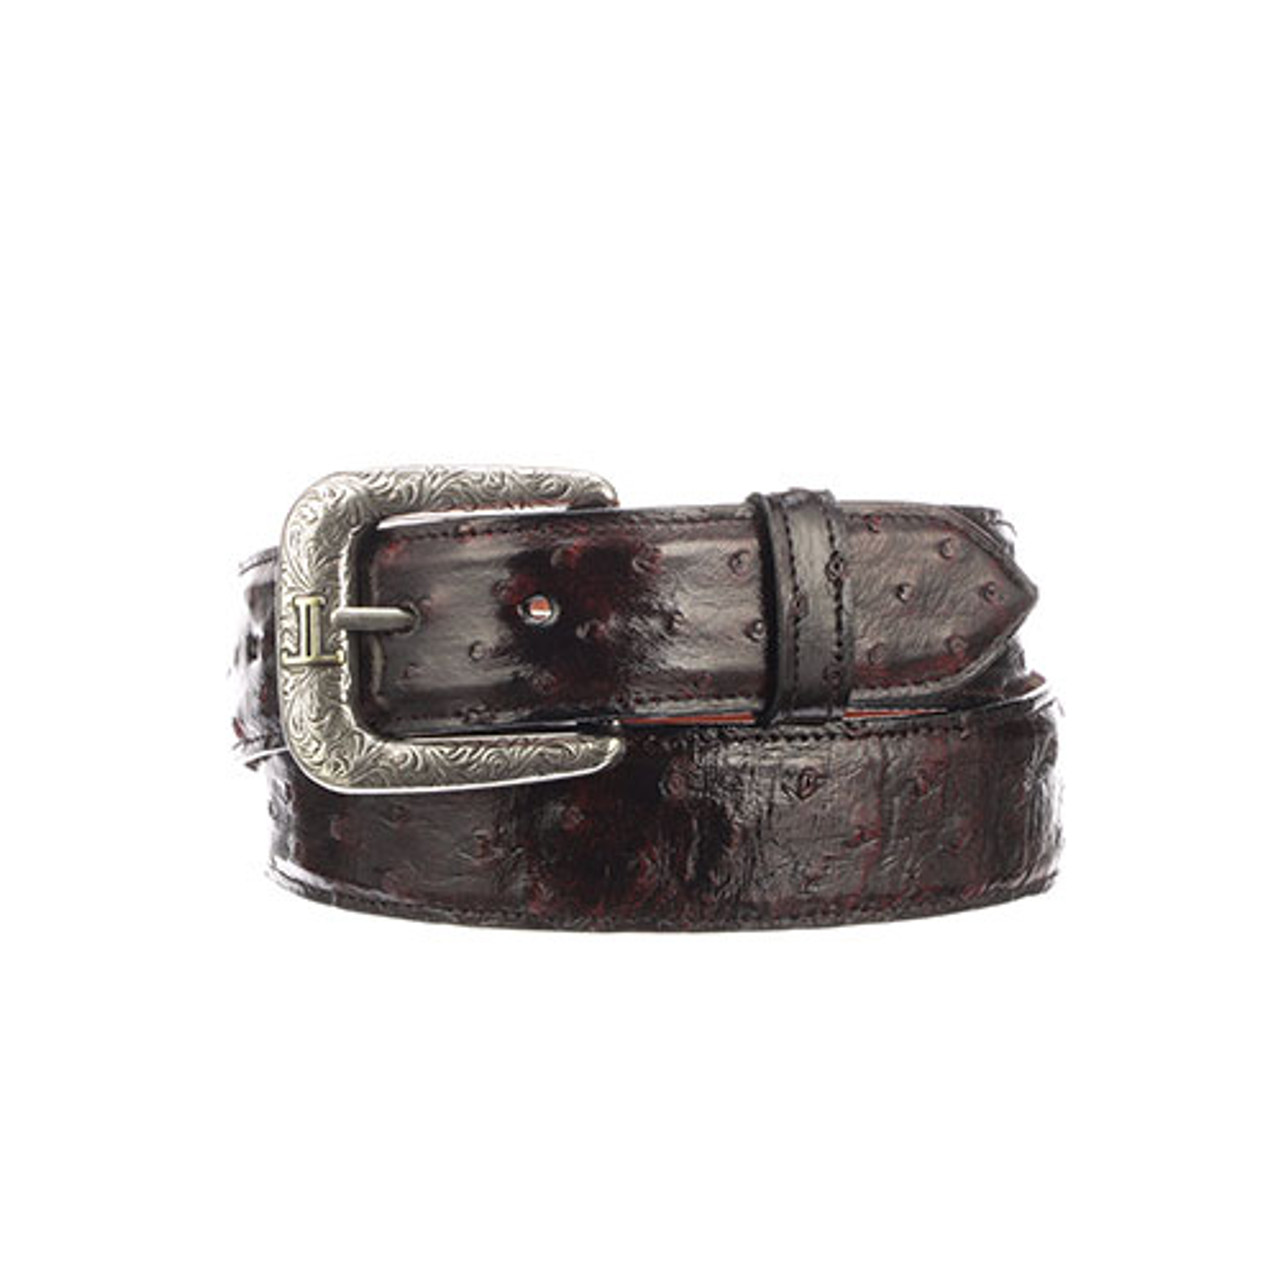 98b854c74 Lucchese Men's Belts - Black Cherry Full Quill Ostrich - Straight or ...